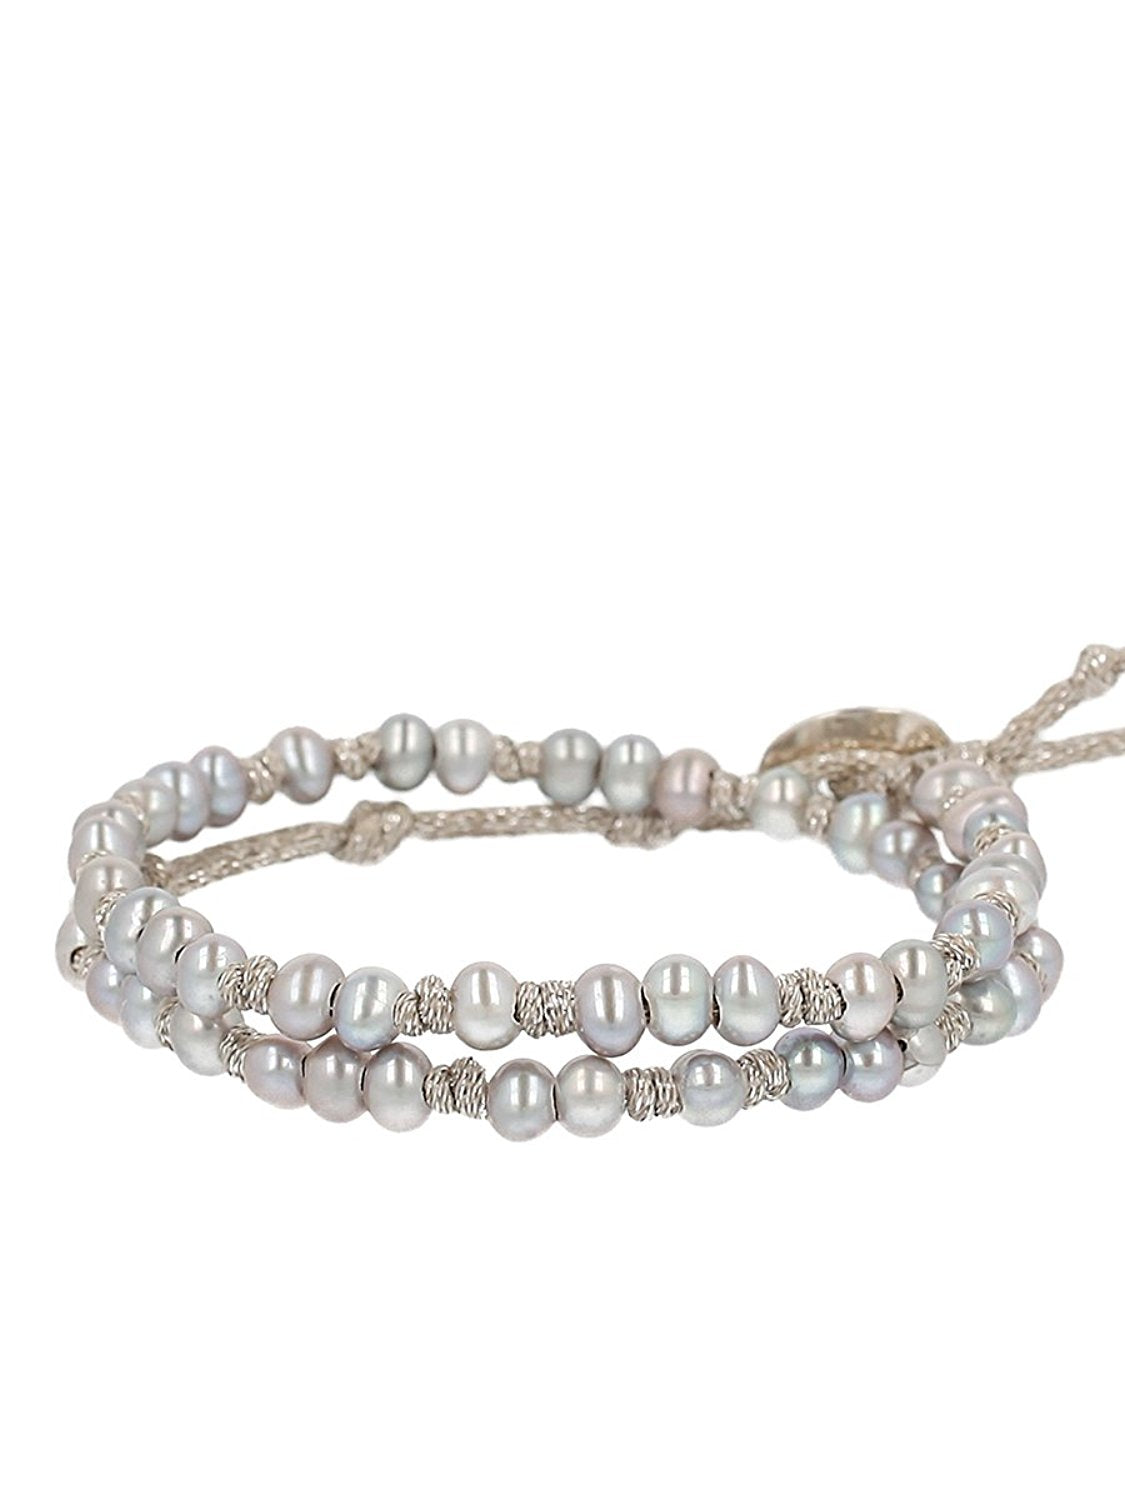 Chan Luu Grey Freshwater Cultured Pearls On A Knotted Silver Tone Metallic Wrap Bracelet